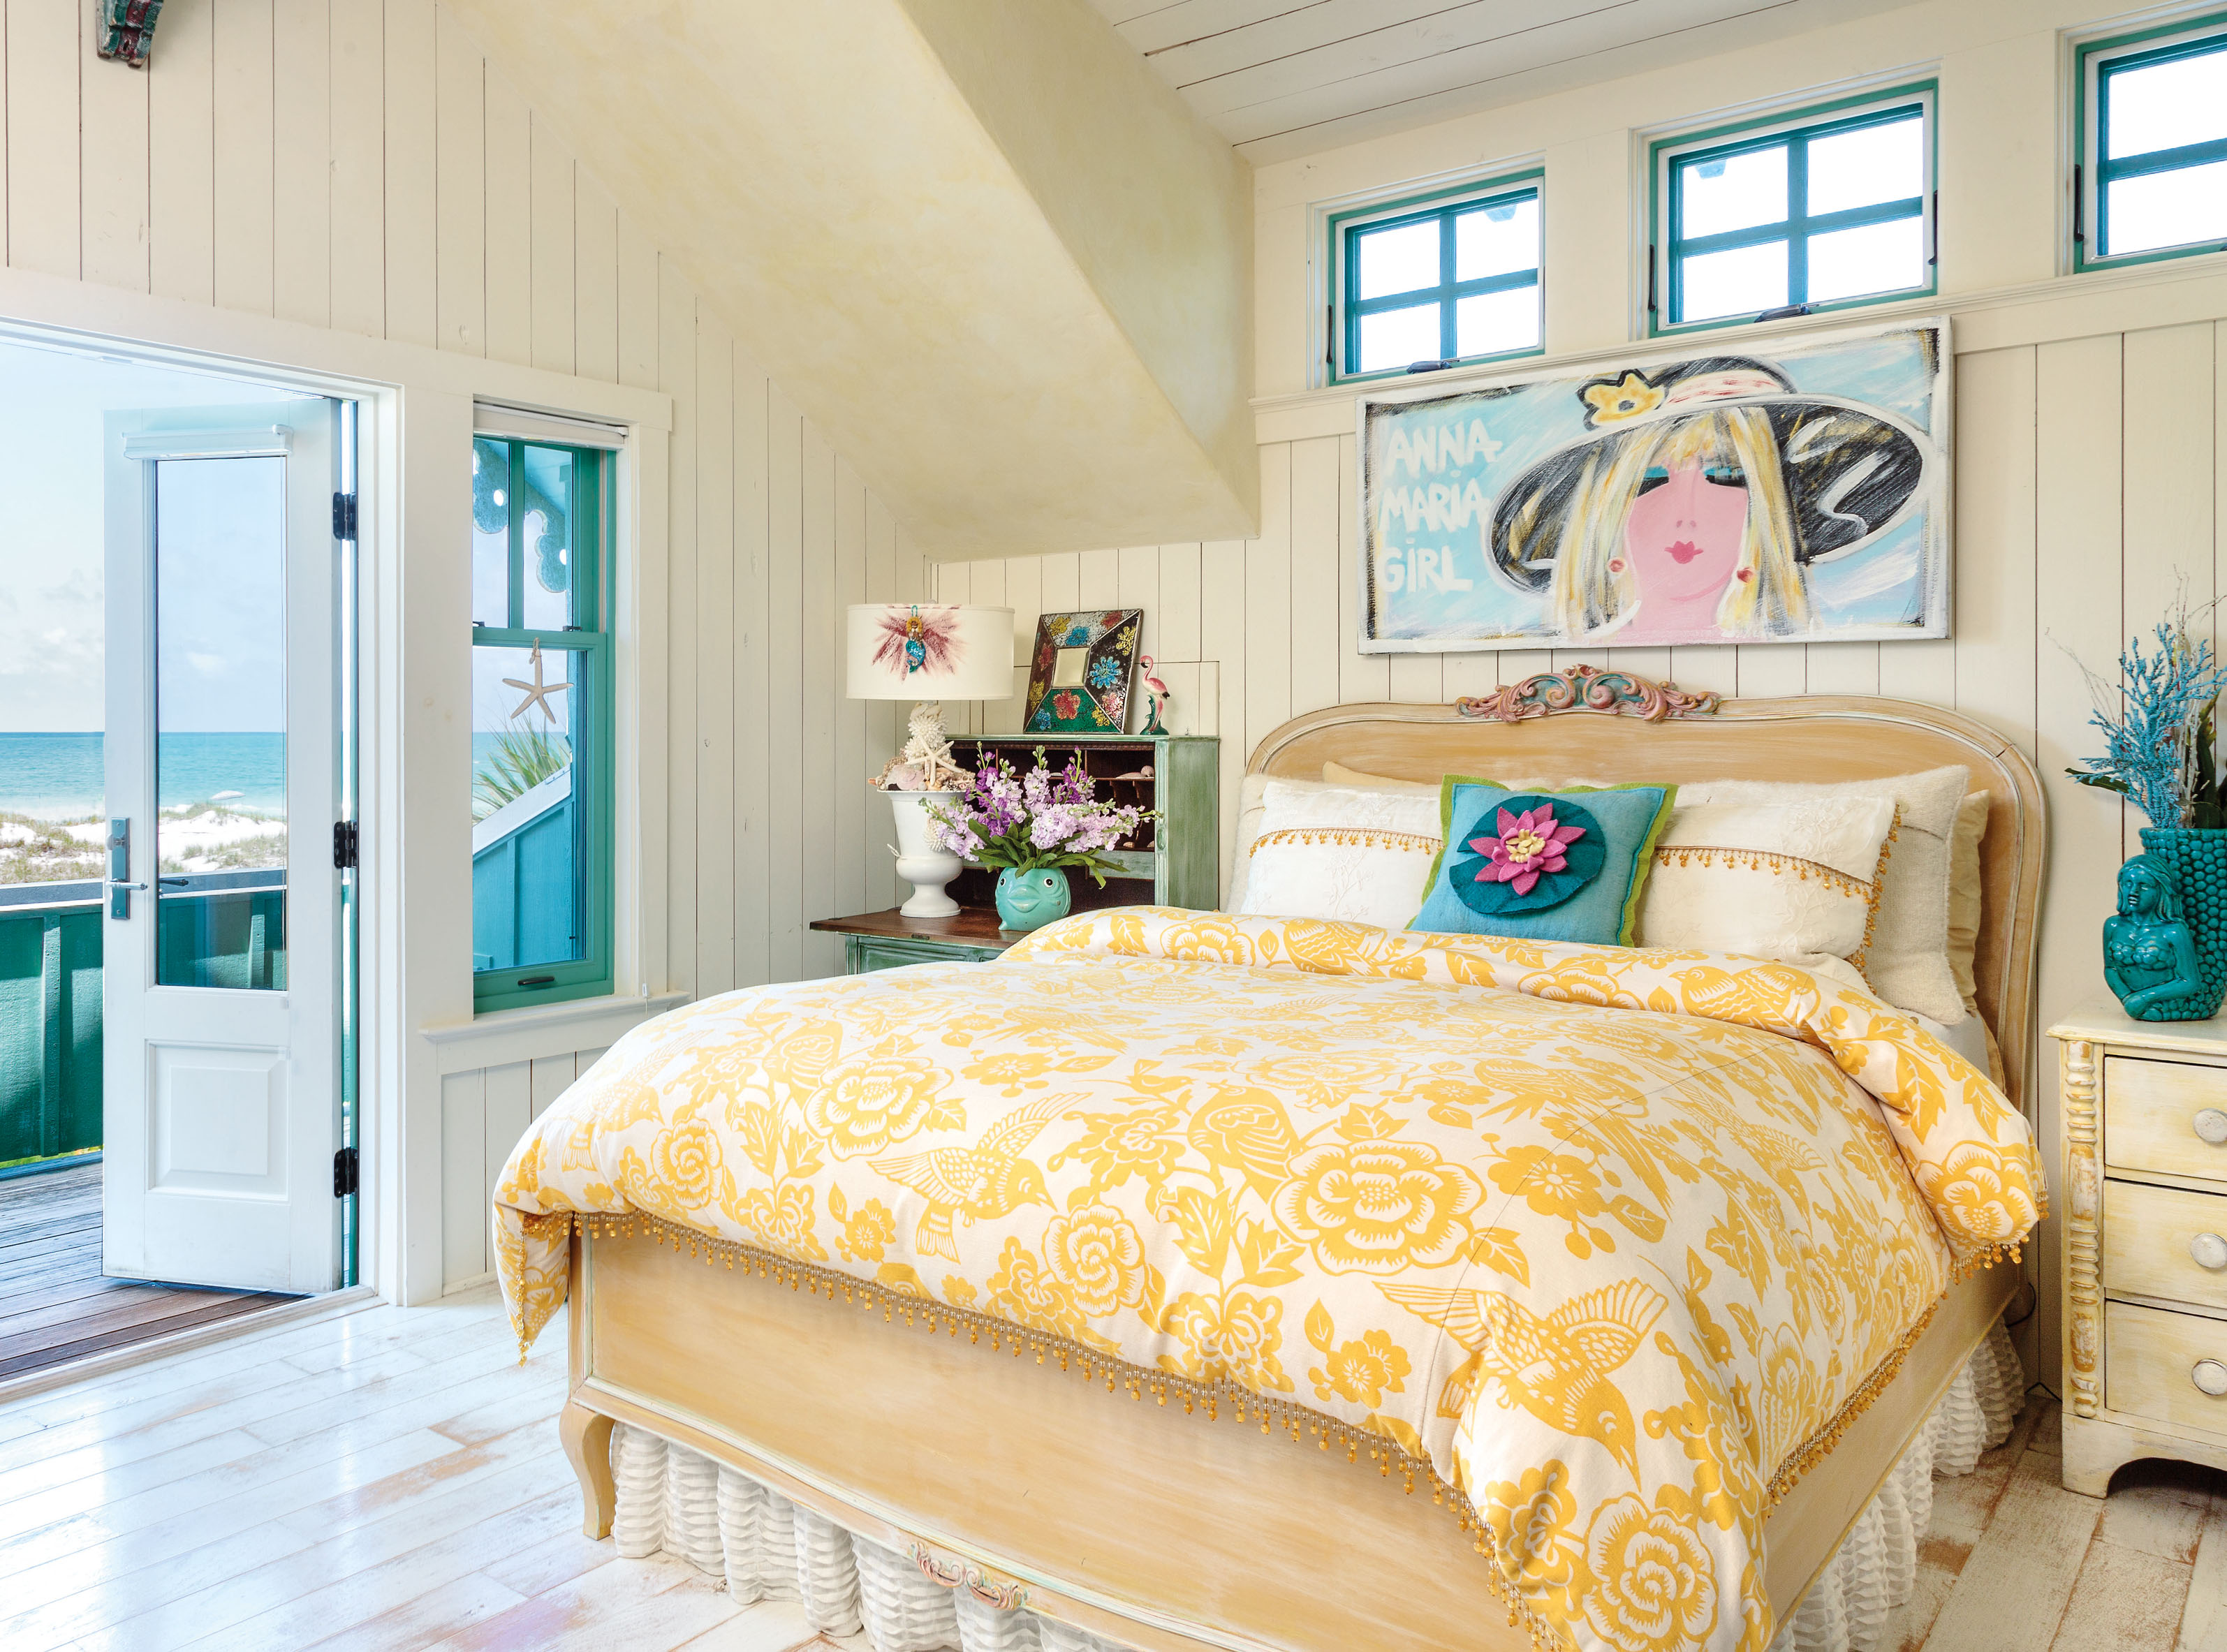 White painted floorboards and pale yellow walls and ceiling create a sunny, shore side room, while a fish shaped vase and a duvet cover decorated with hummingbirds and flowers are the perfect finishing touches in Kandice Ridley's home ( Mark Lohman/Global Bohemian/Cico Books/PA)